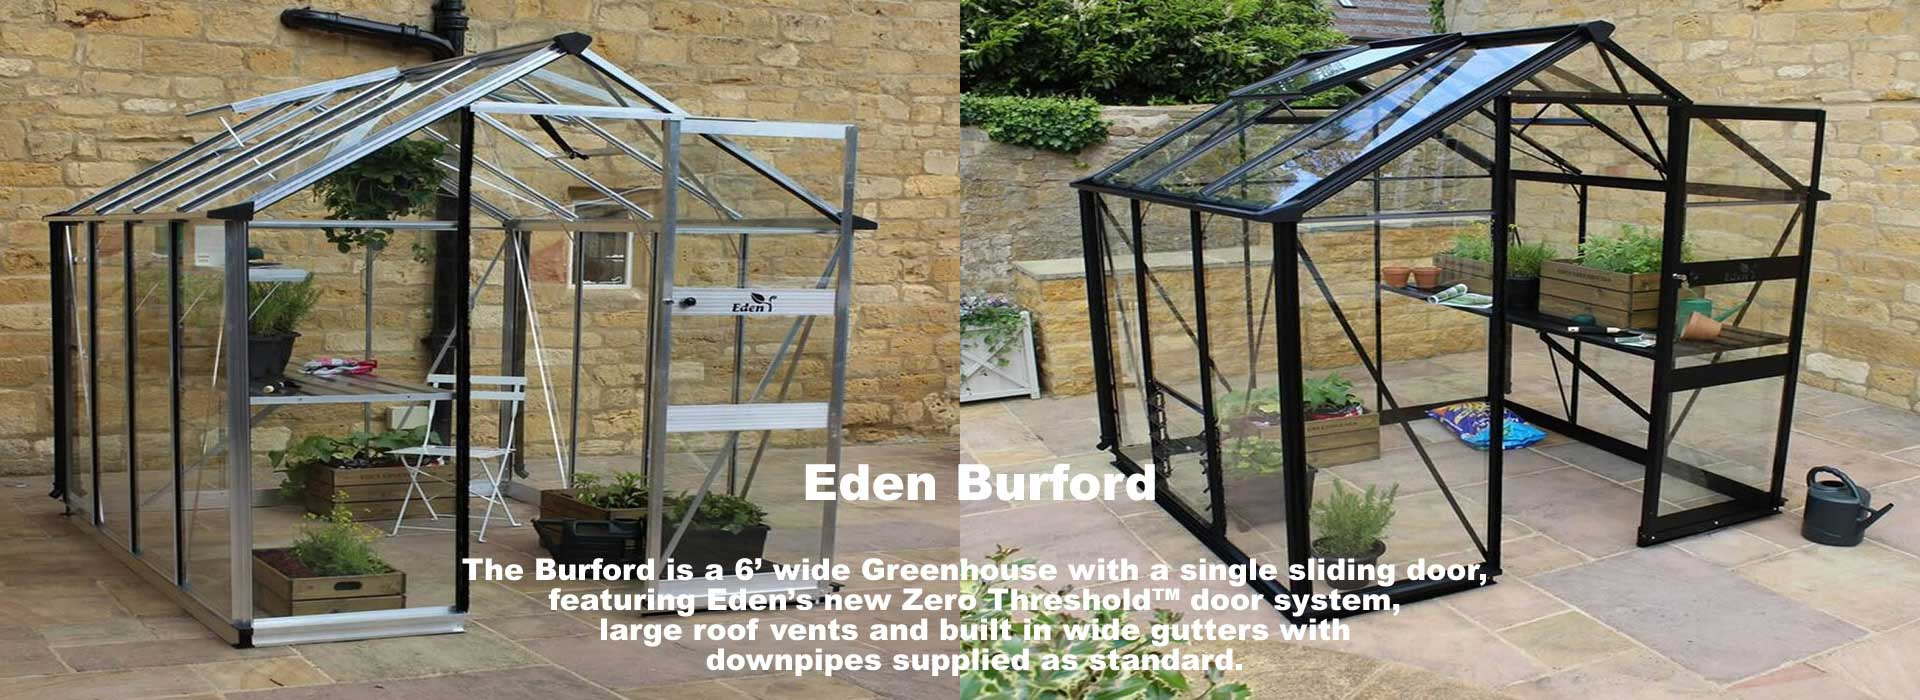 Eden Burford Greenhouses